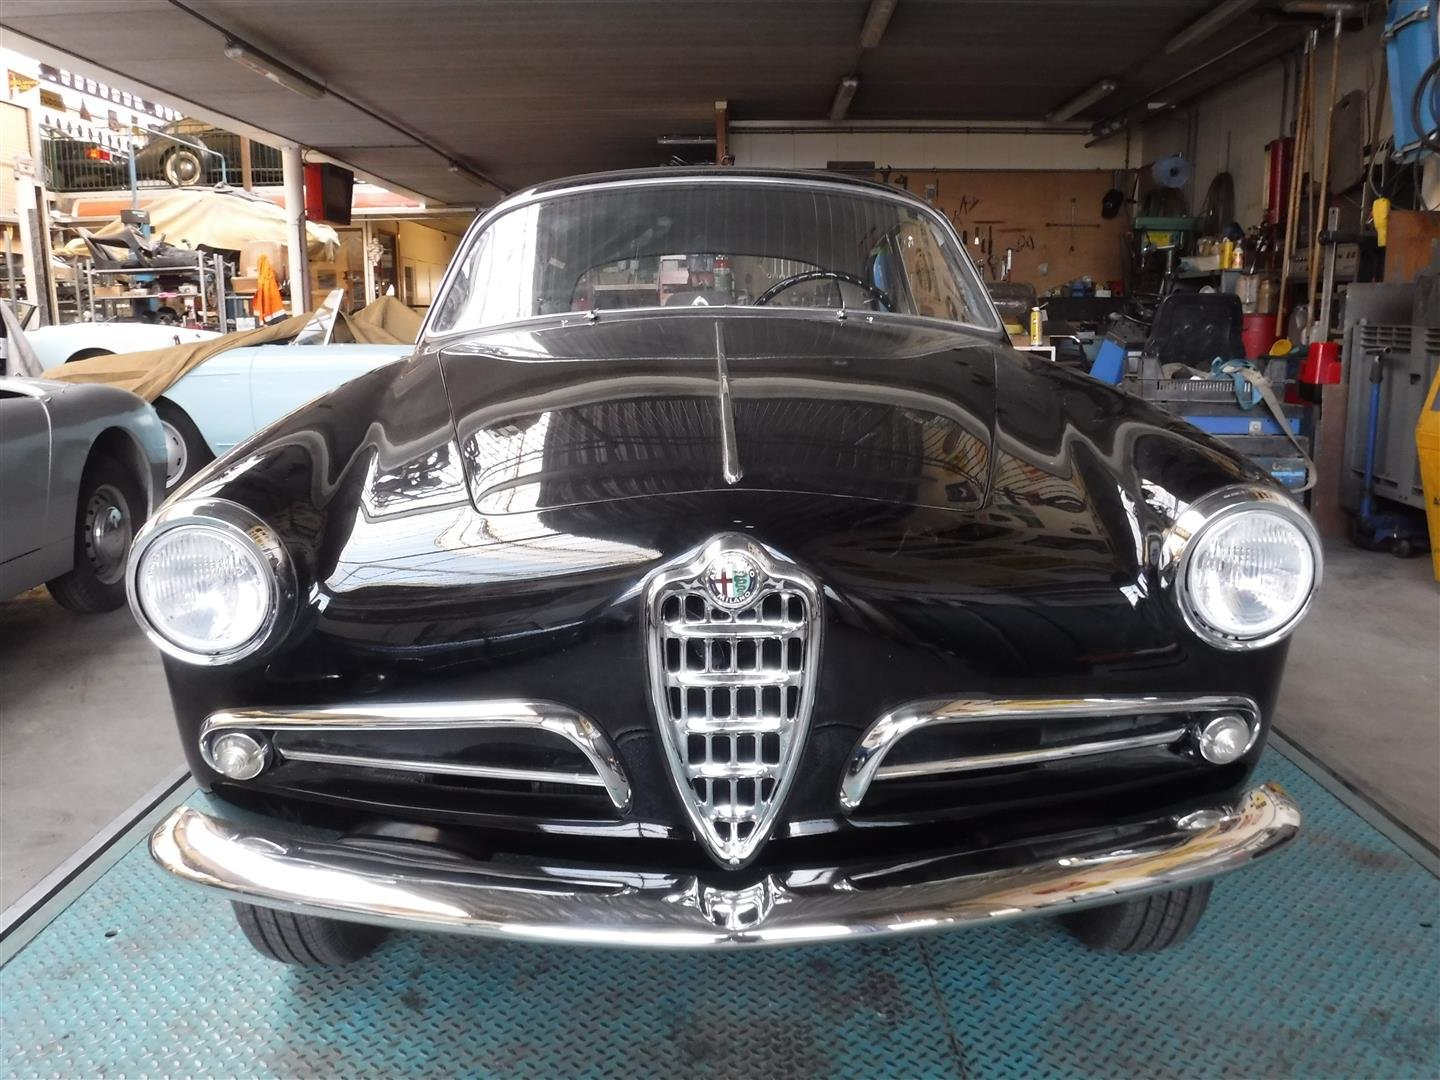 1956 ALfa Romeo 1300 sprint type 750 For Sale (picture 2 of 6)